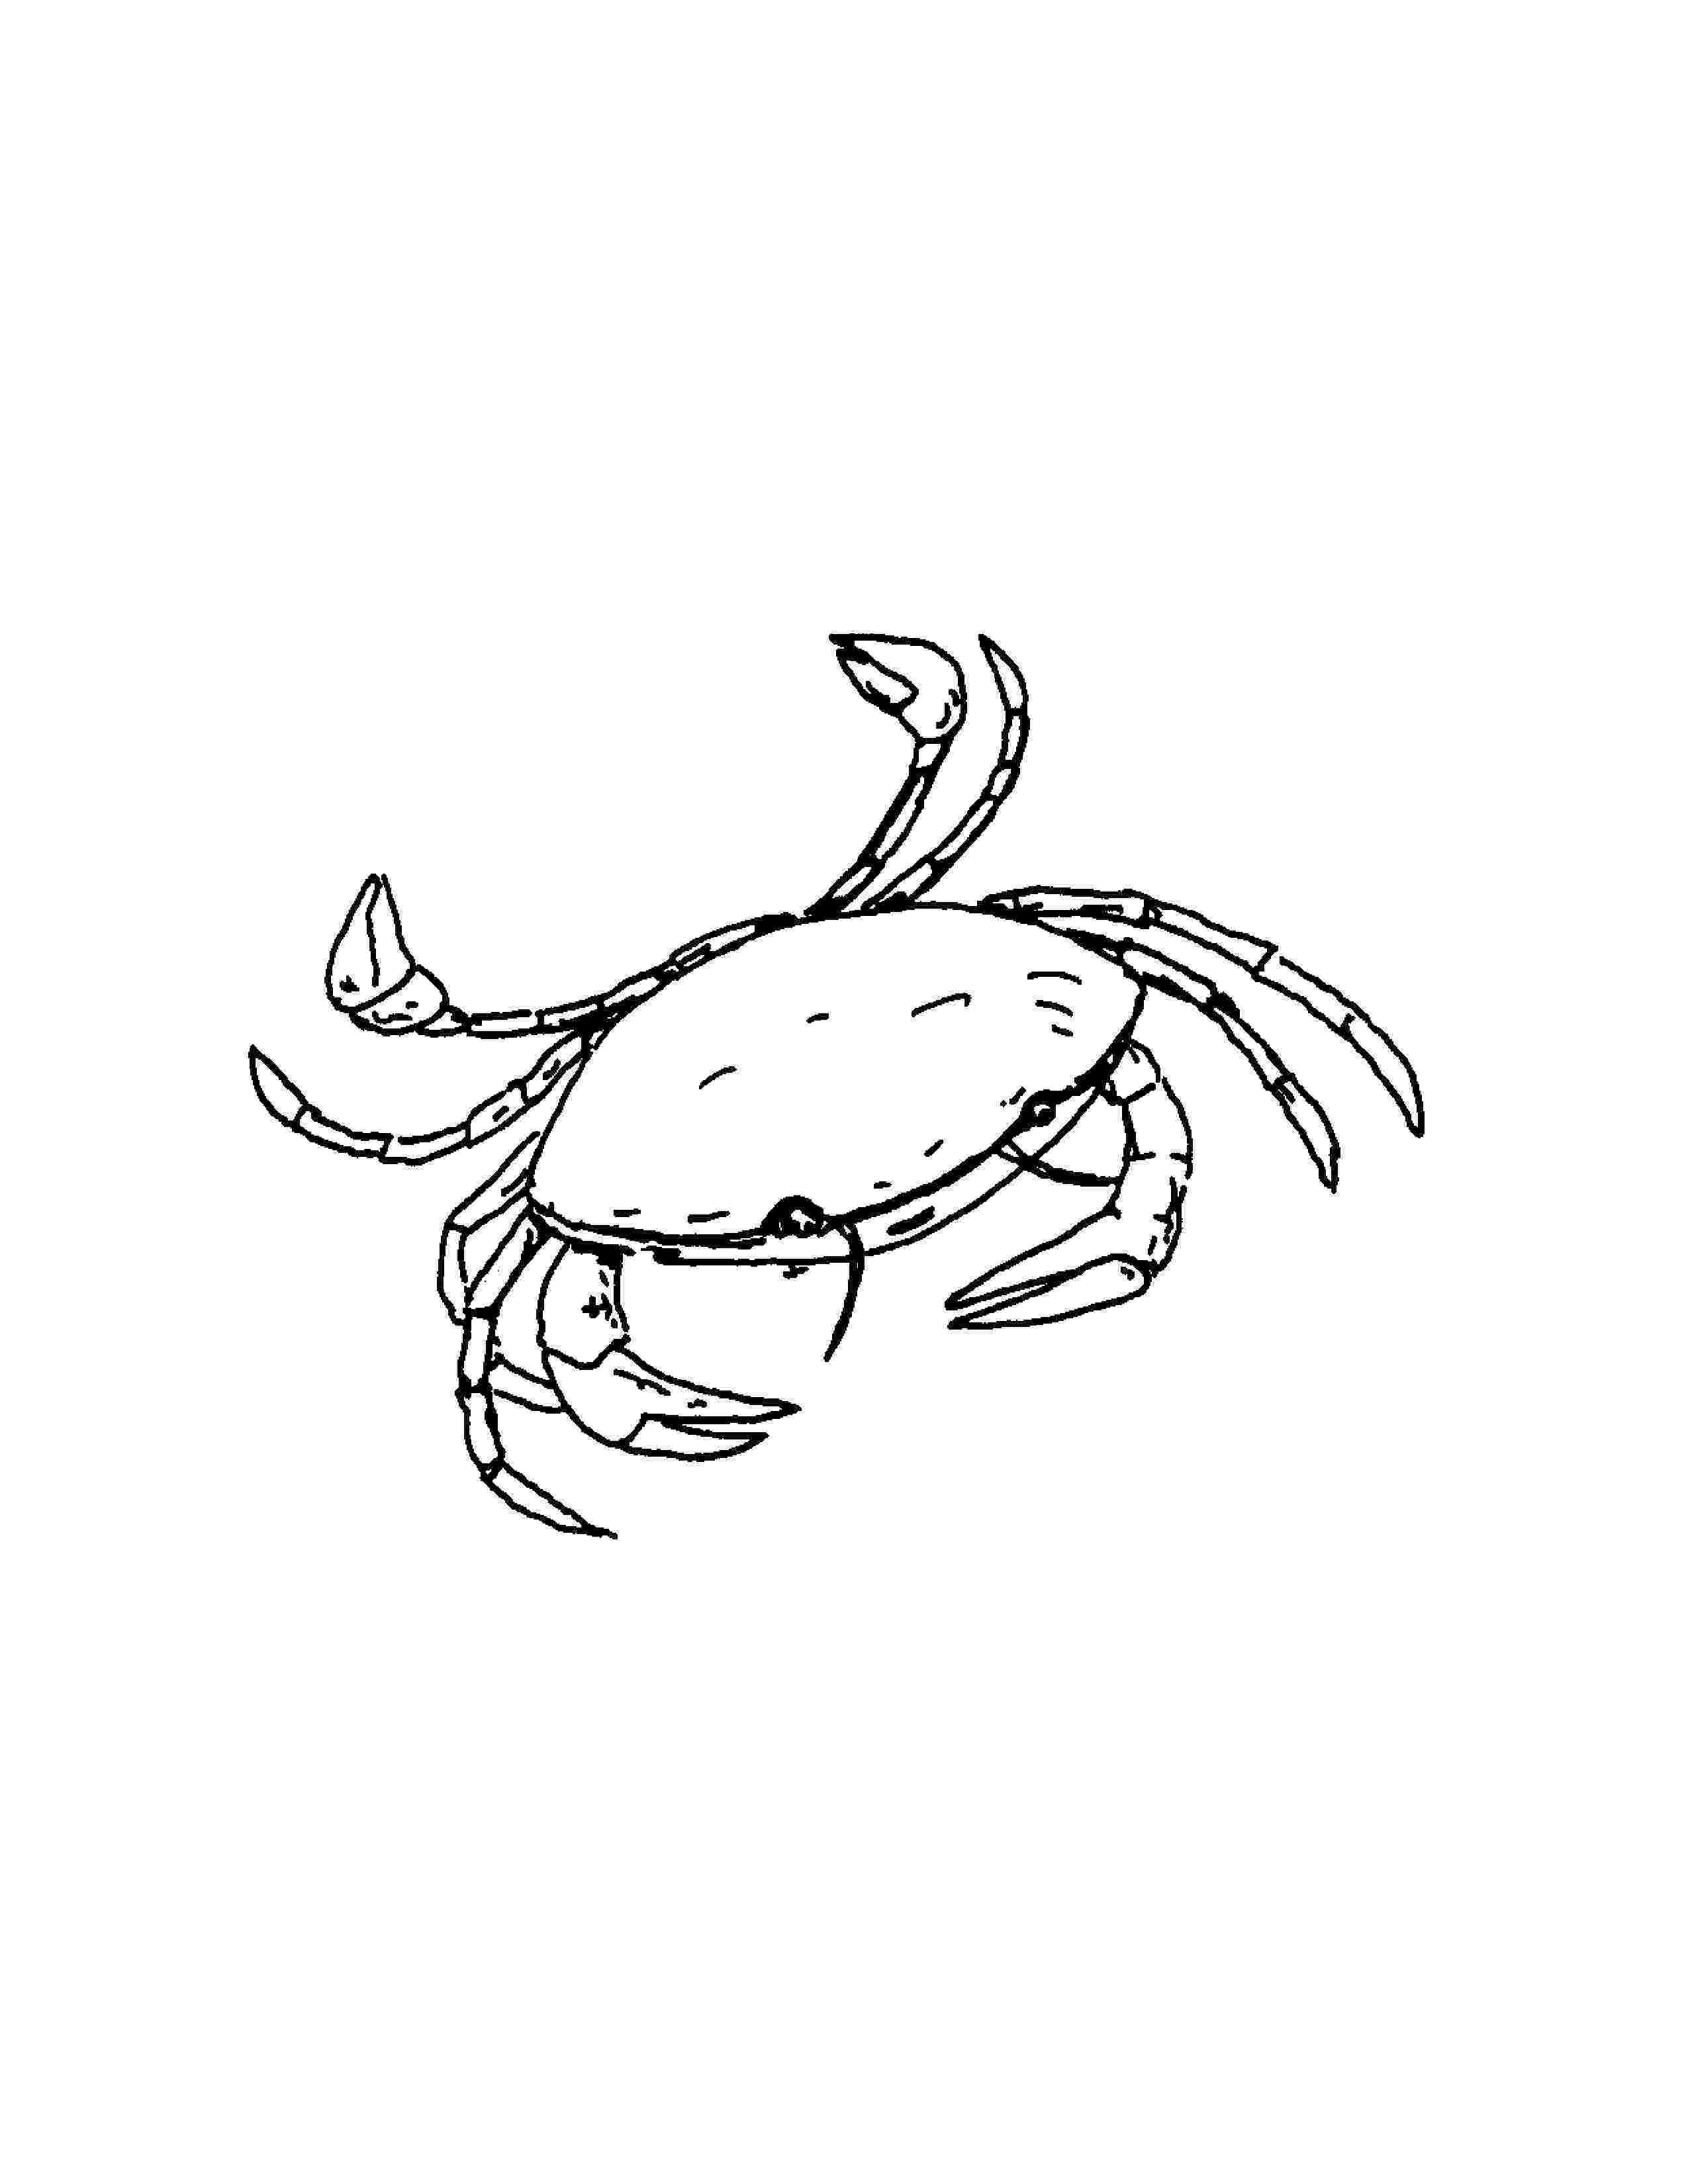 sea life animals coloring pages sea animals coloring pages coloring pages for kids coloring sea pages animals life